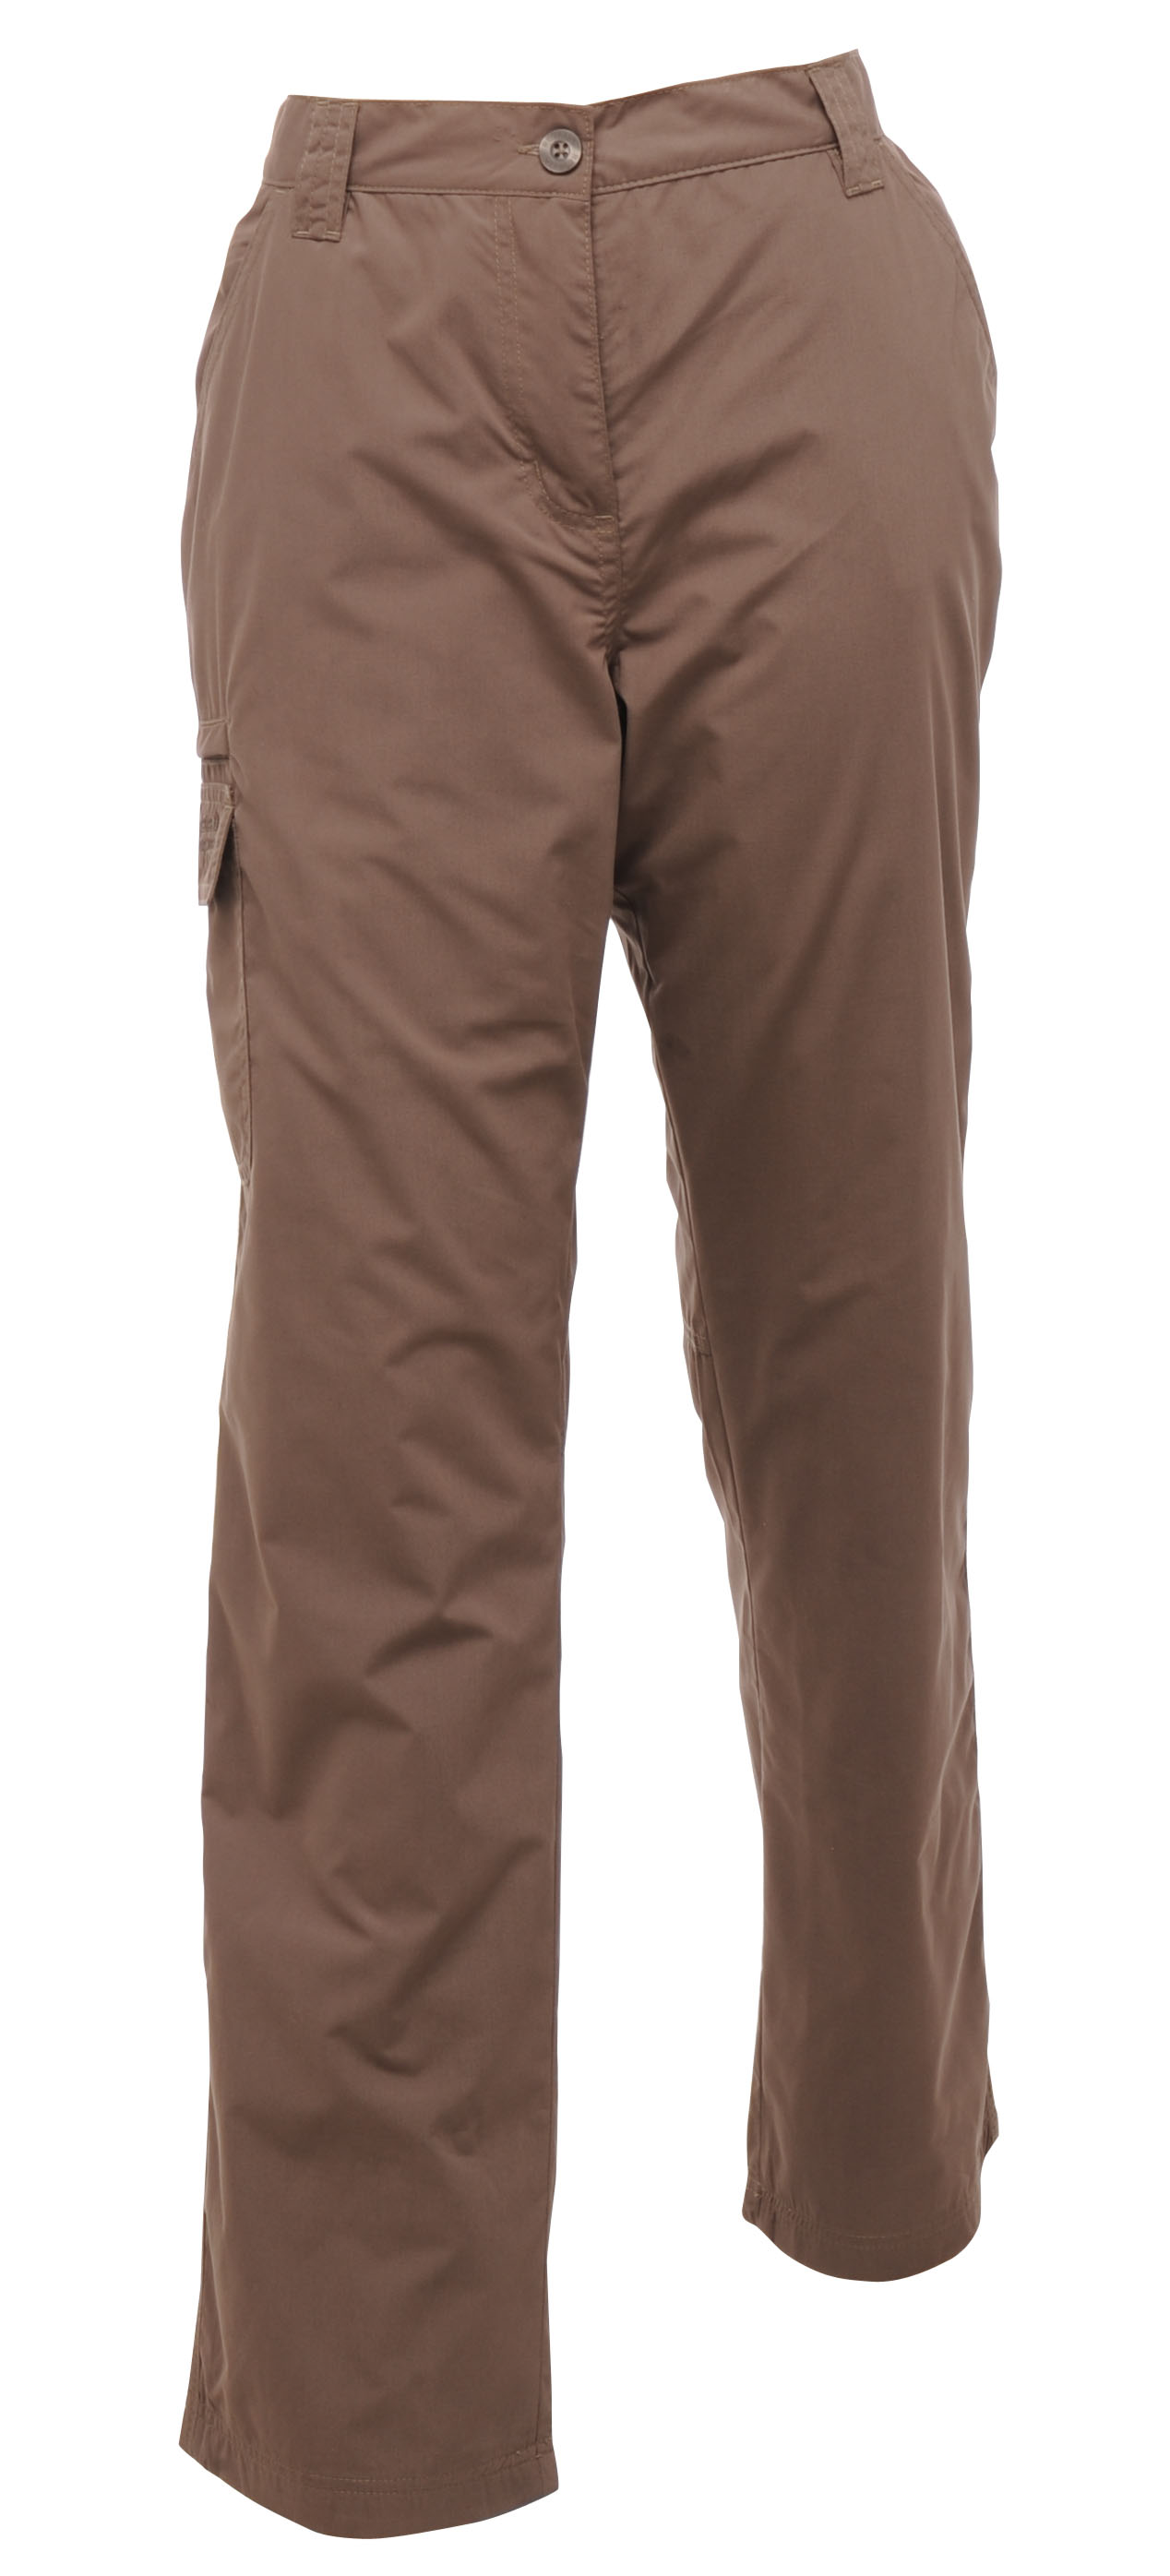 Regatta Women's Lined Crossfell Trousers